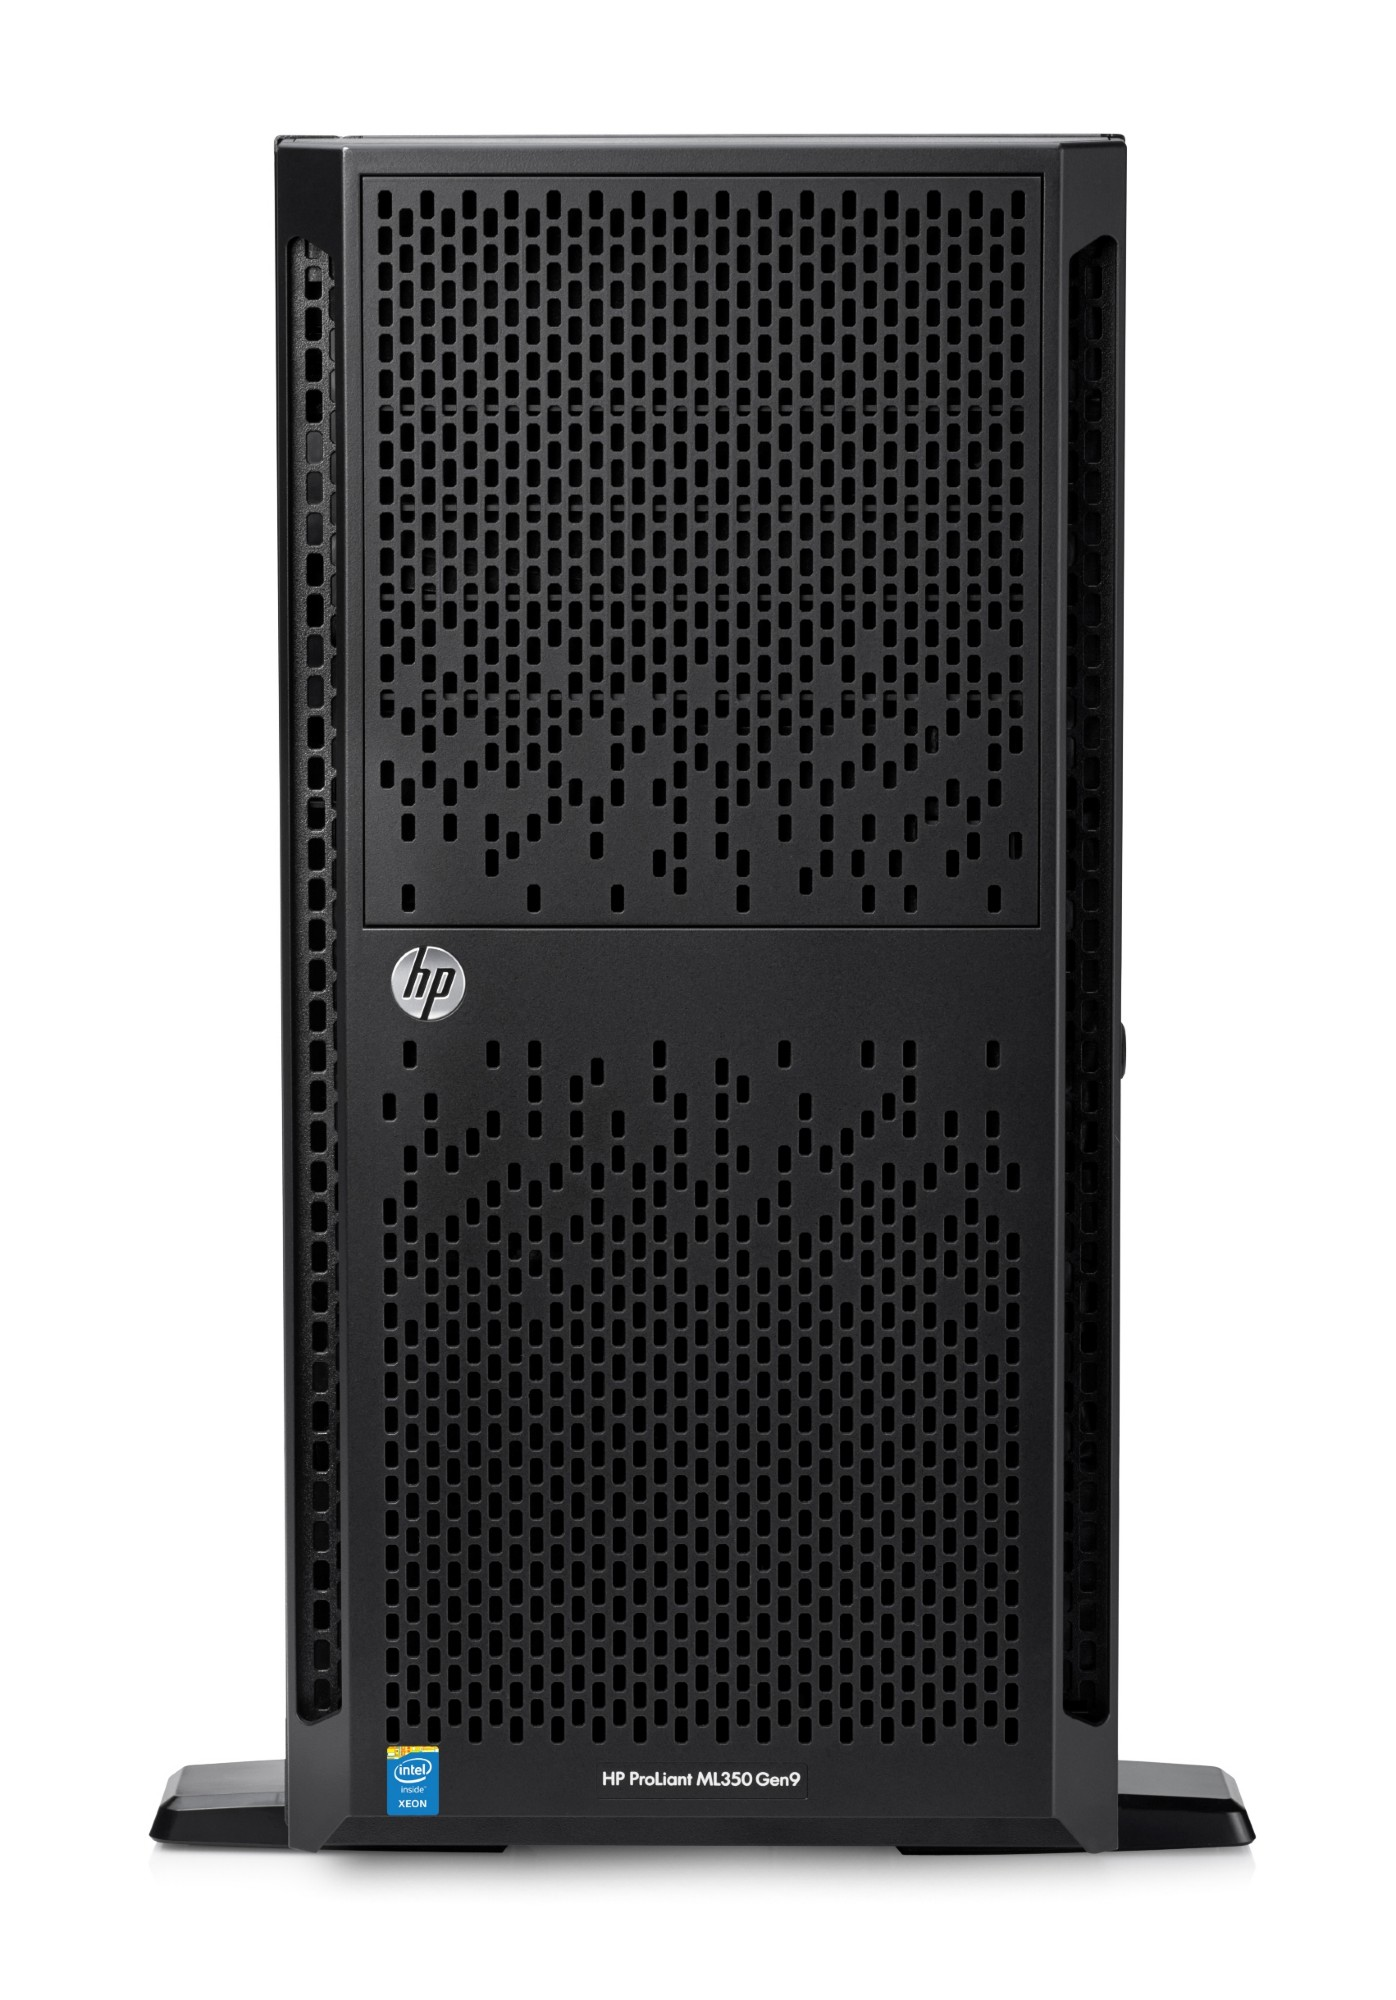 HPE 835847-425 PROLIANT ML350 GEN9 2.1GHZ E5-2620V4 500W TOWER (5U) SERVER